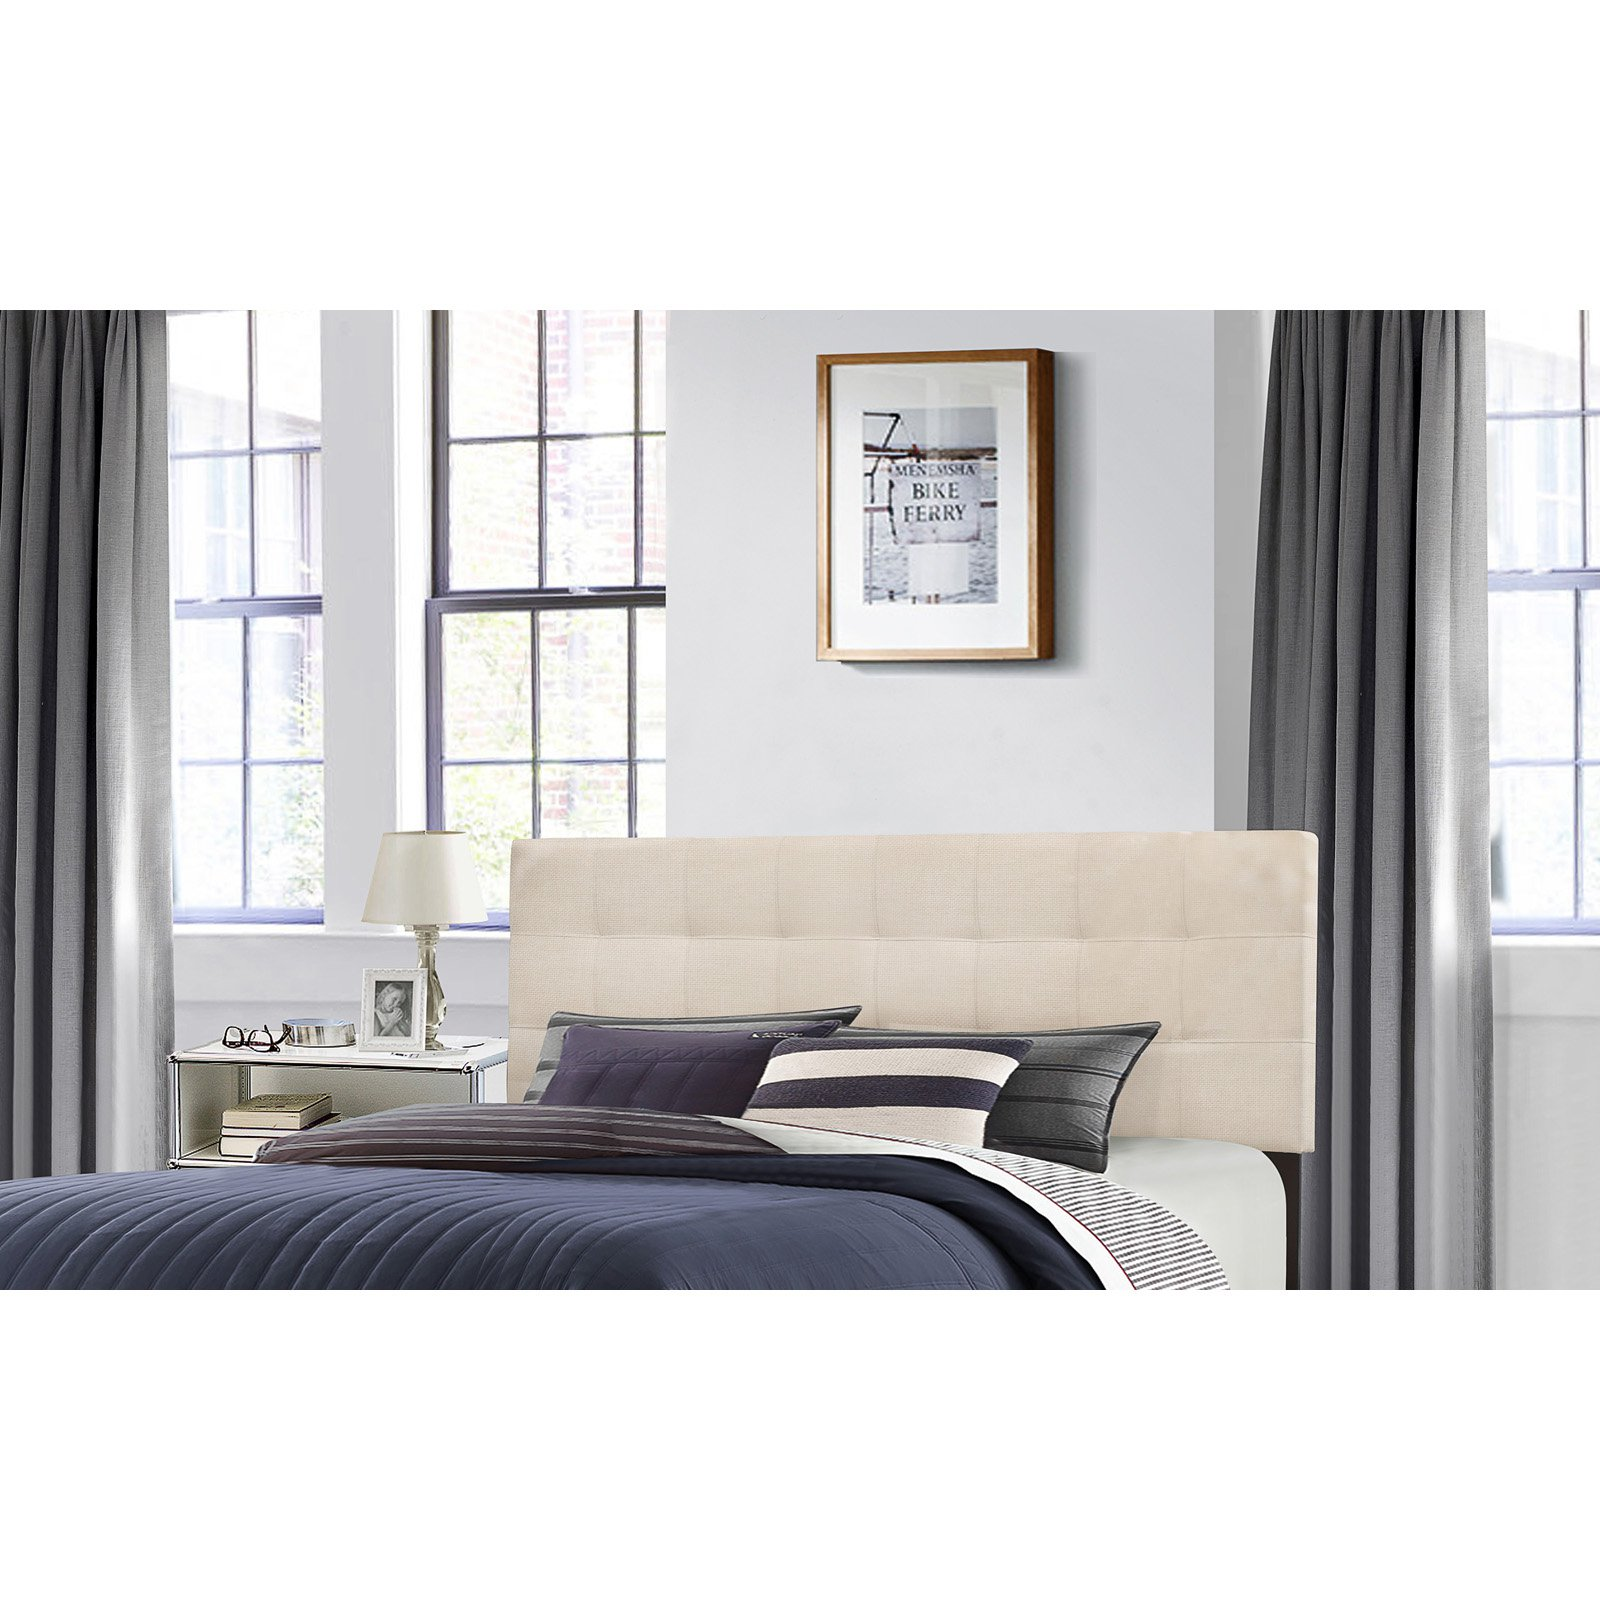 Hillsdale Delaney Upholstered Headboard